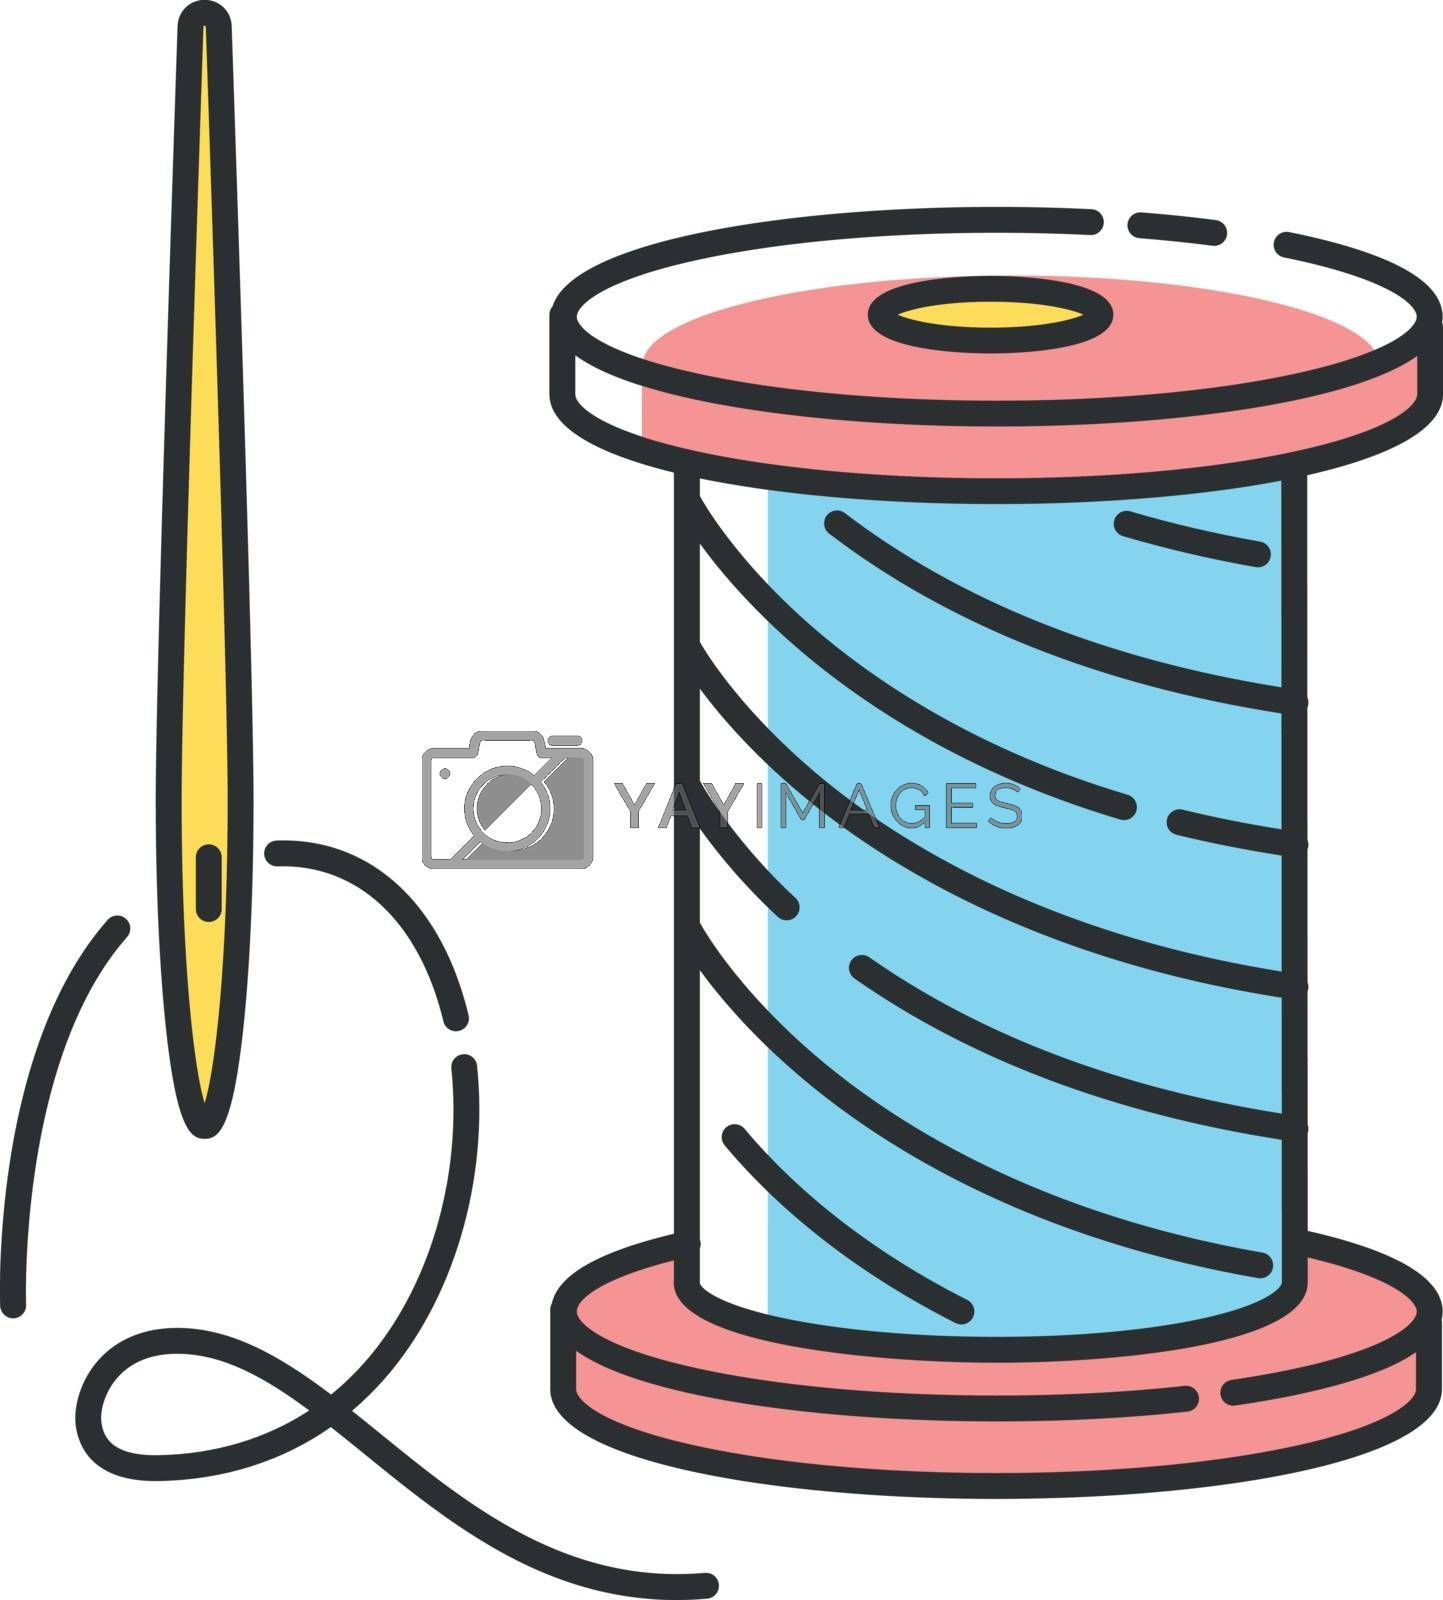 Repairing clothing RGB color icon. Sewing studio, professional needlework, atelier. Zero waste lifestyle advice. Needle and thread isolated vector illustration